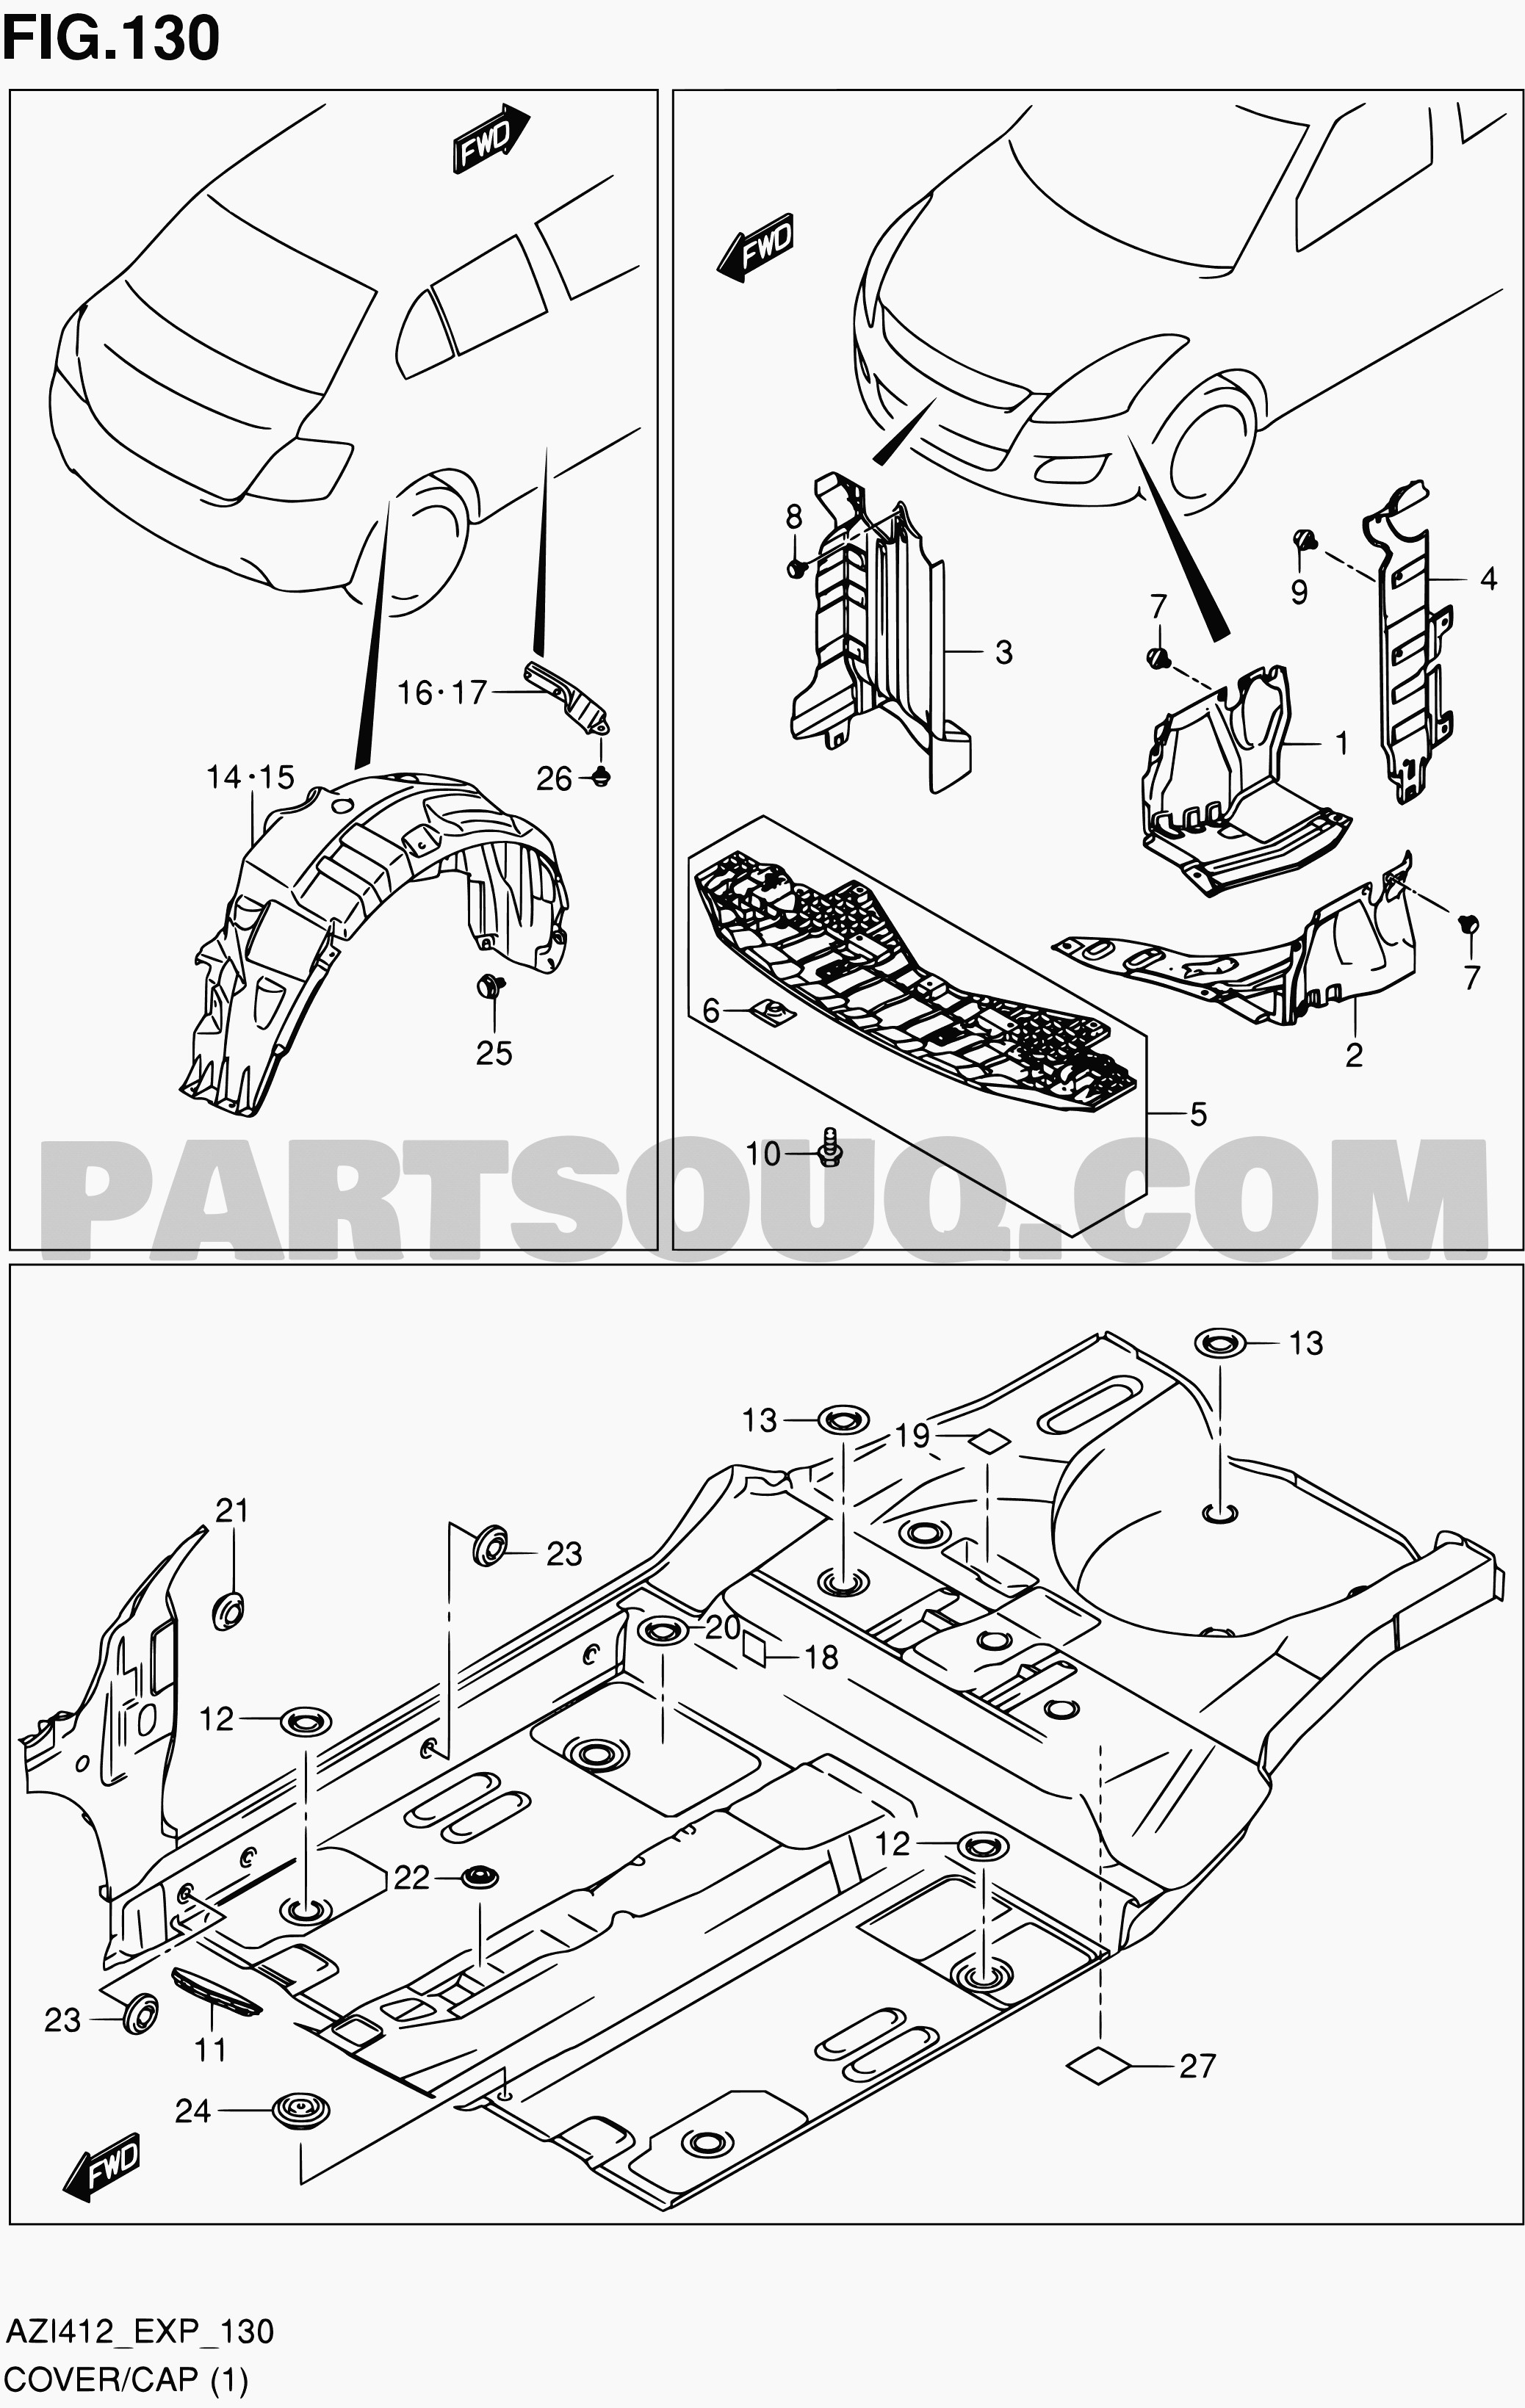 Car diagram in spanish trusted wiring diagram diagram of car parts in spanish 130 cover cap 4dr my wiring diagram rh detoxicrecenze com body in spanish bones in spanish ccuart Choice Image